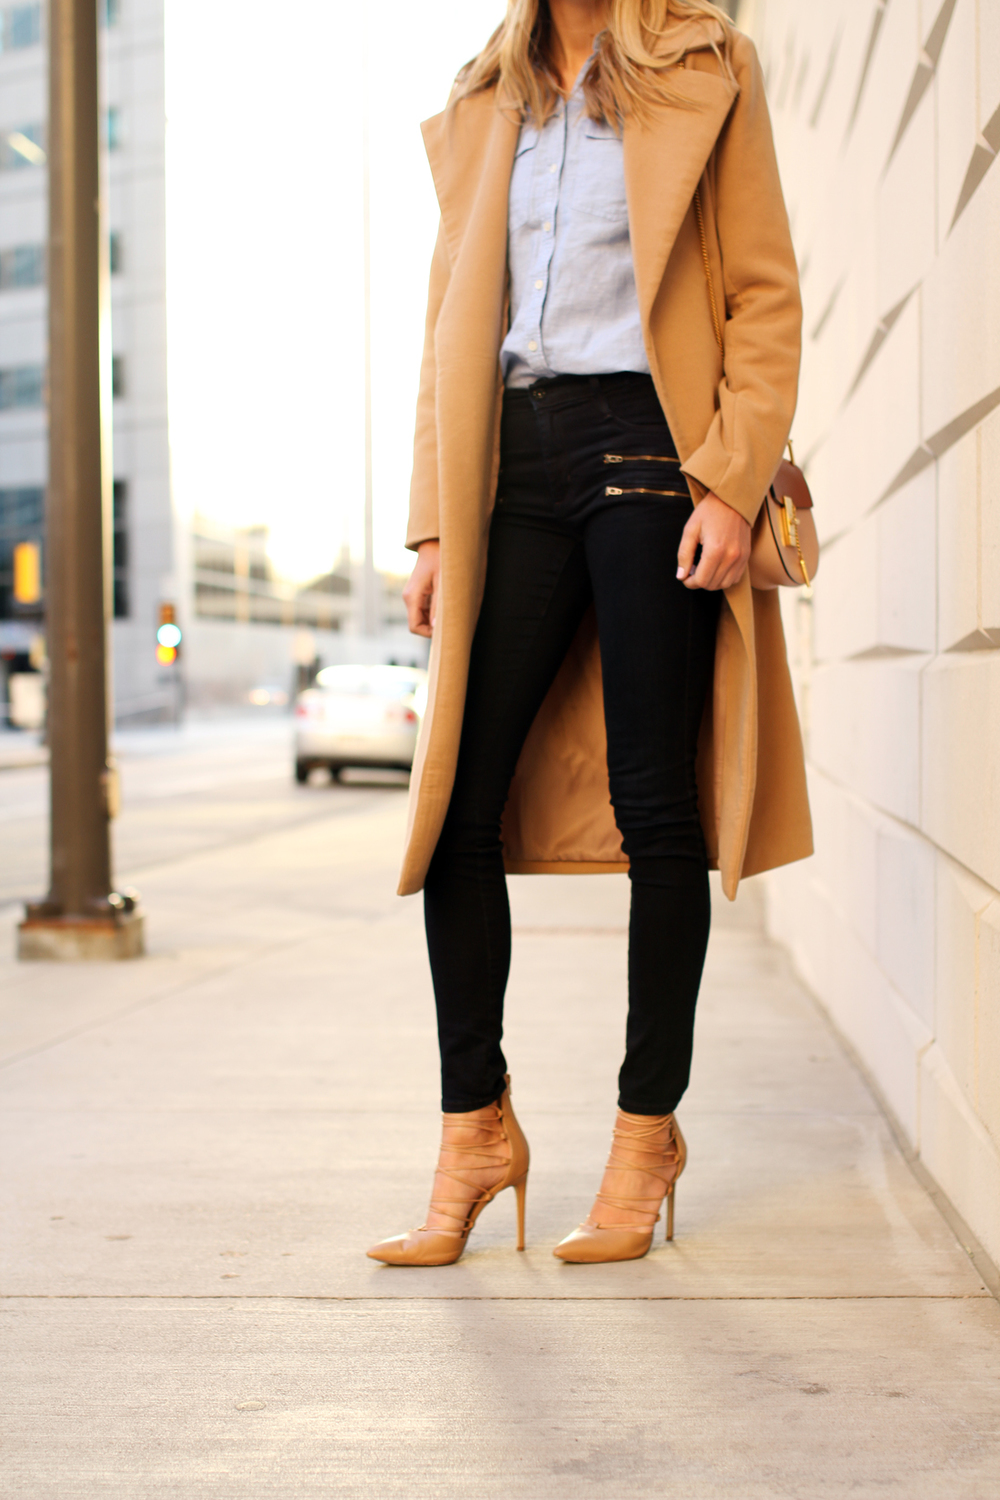 fashion-jackson-missguided-tan-long-wool-coat-james-jeans-crux-nude-lace-up-heels-blue-button-up-shirt.jpg